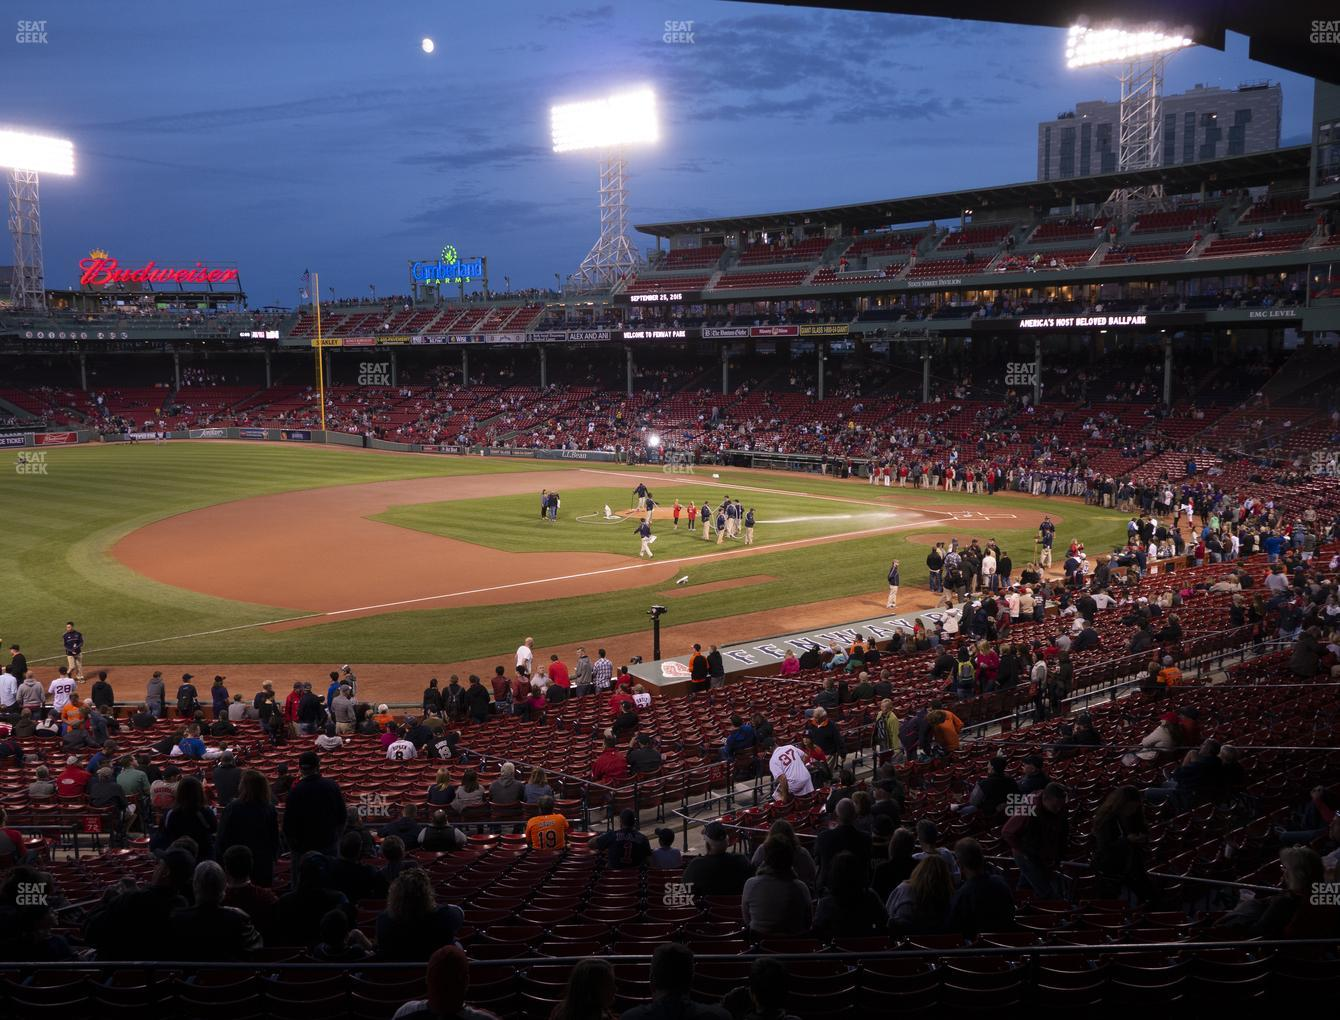 Boston Red Sox at Fenway Park Infield Grandstand 29 View